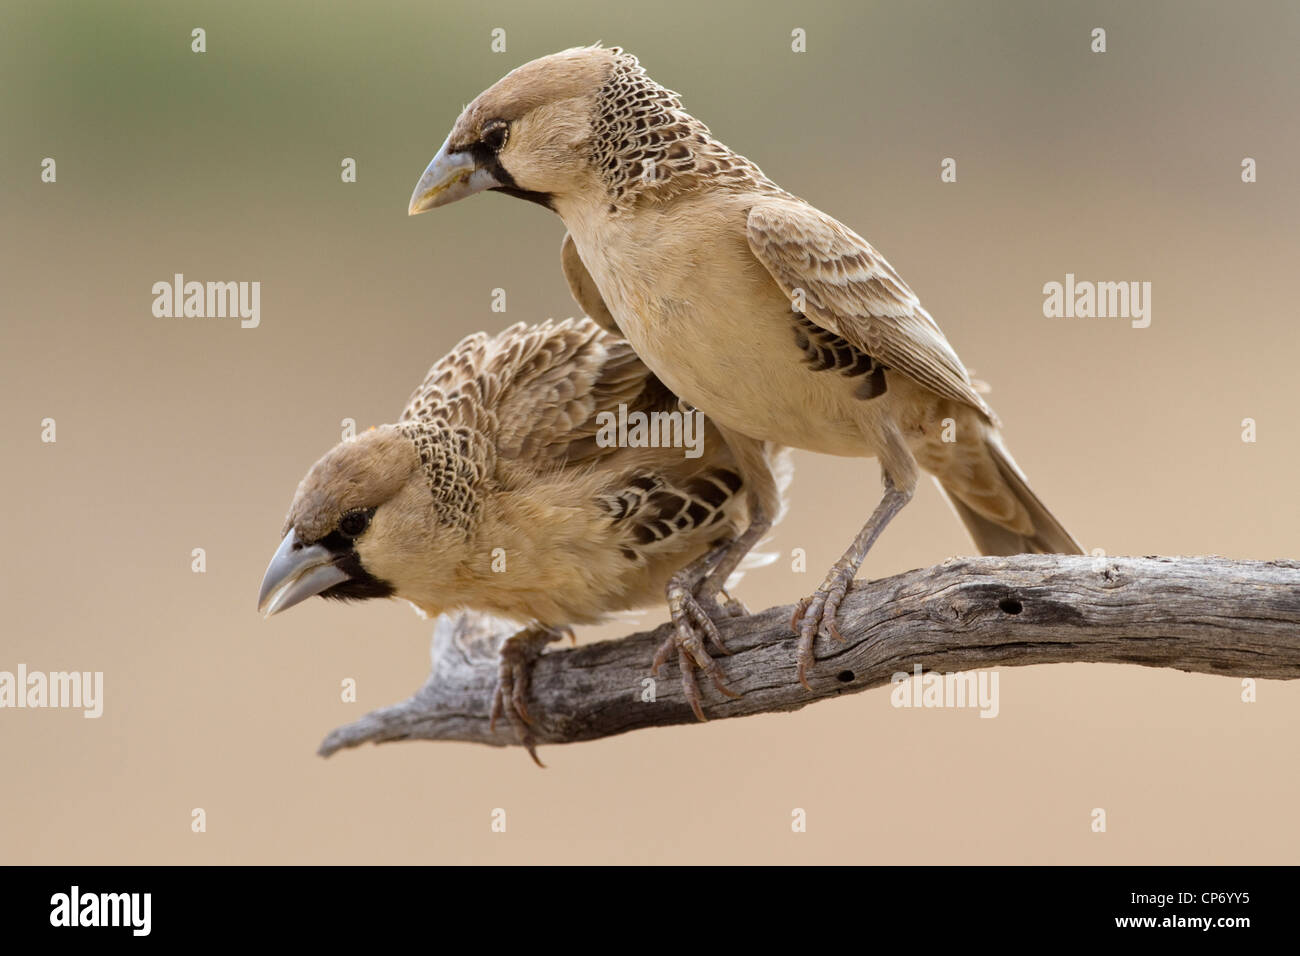 Two sociable weaver birds on a branch one peering downwards - Stock Image